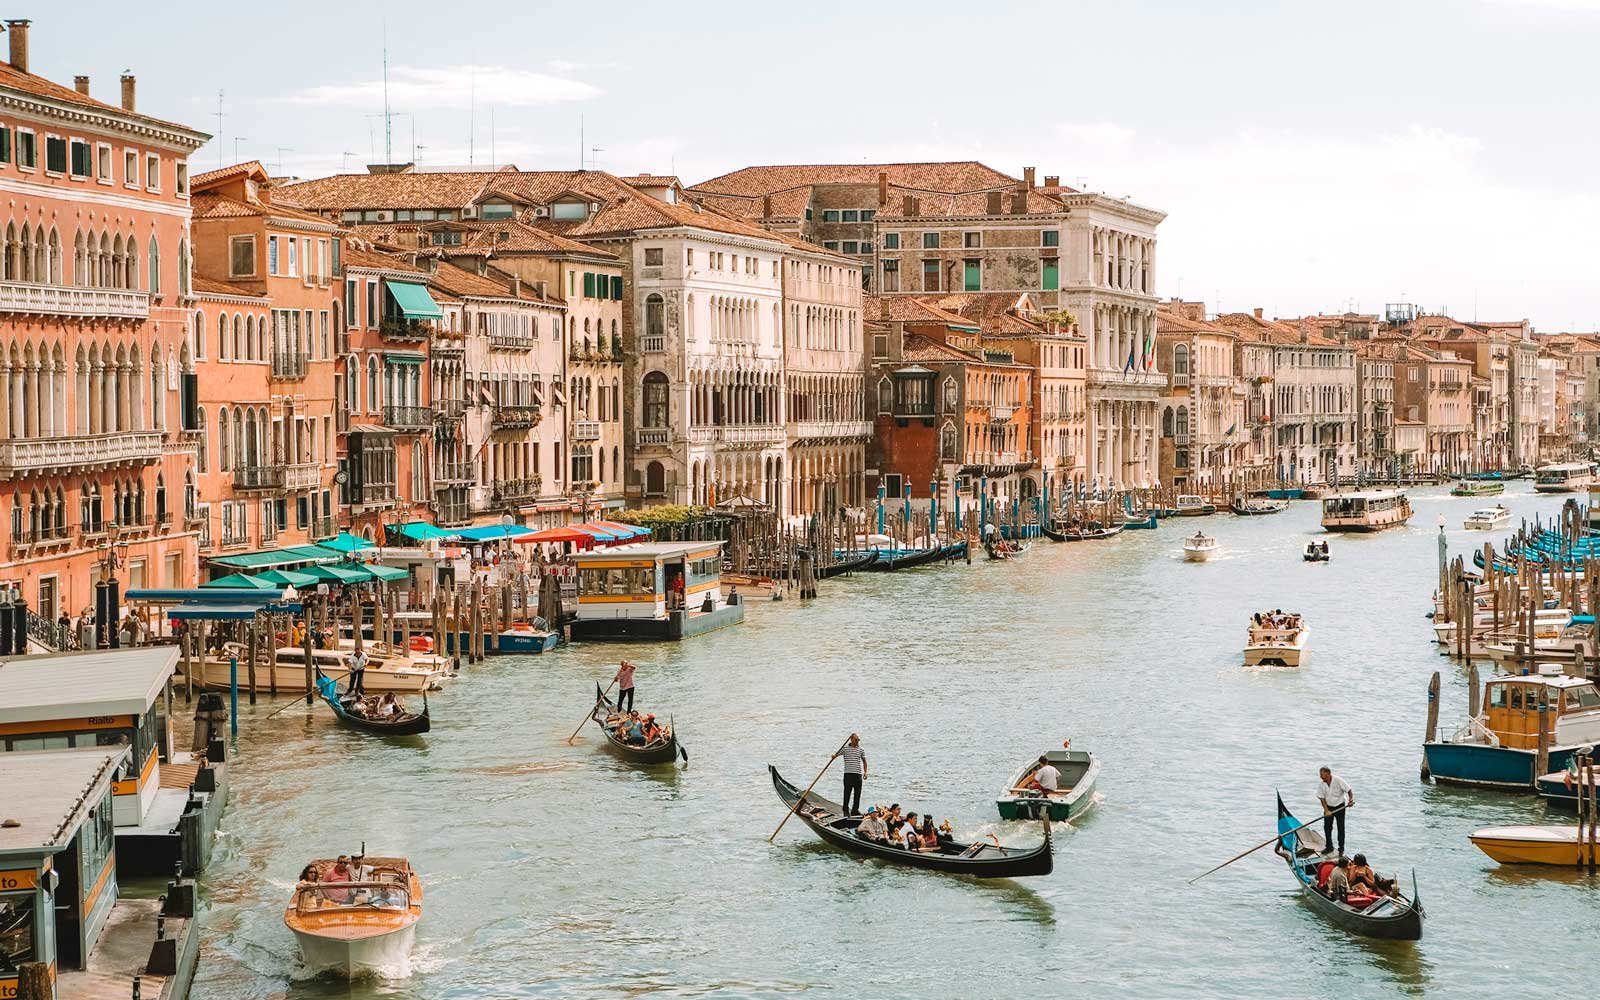 WHAT TO SEE IN VENICE IN A WEEKEND